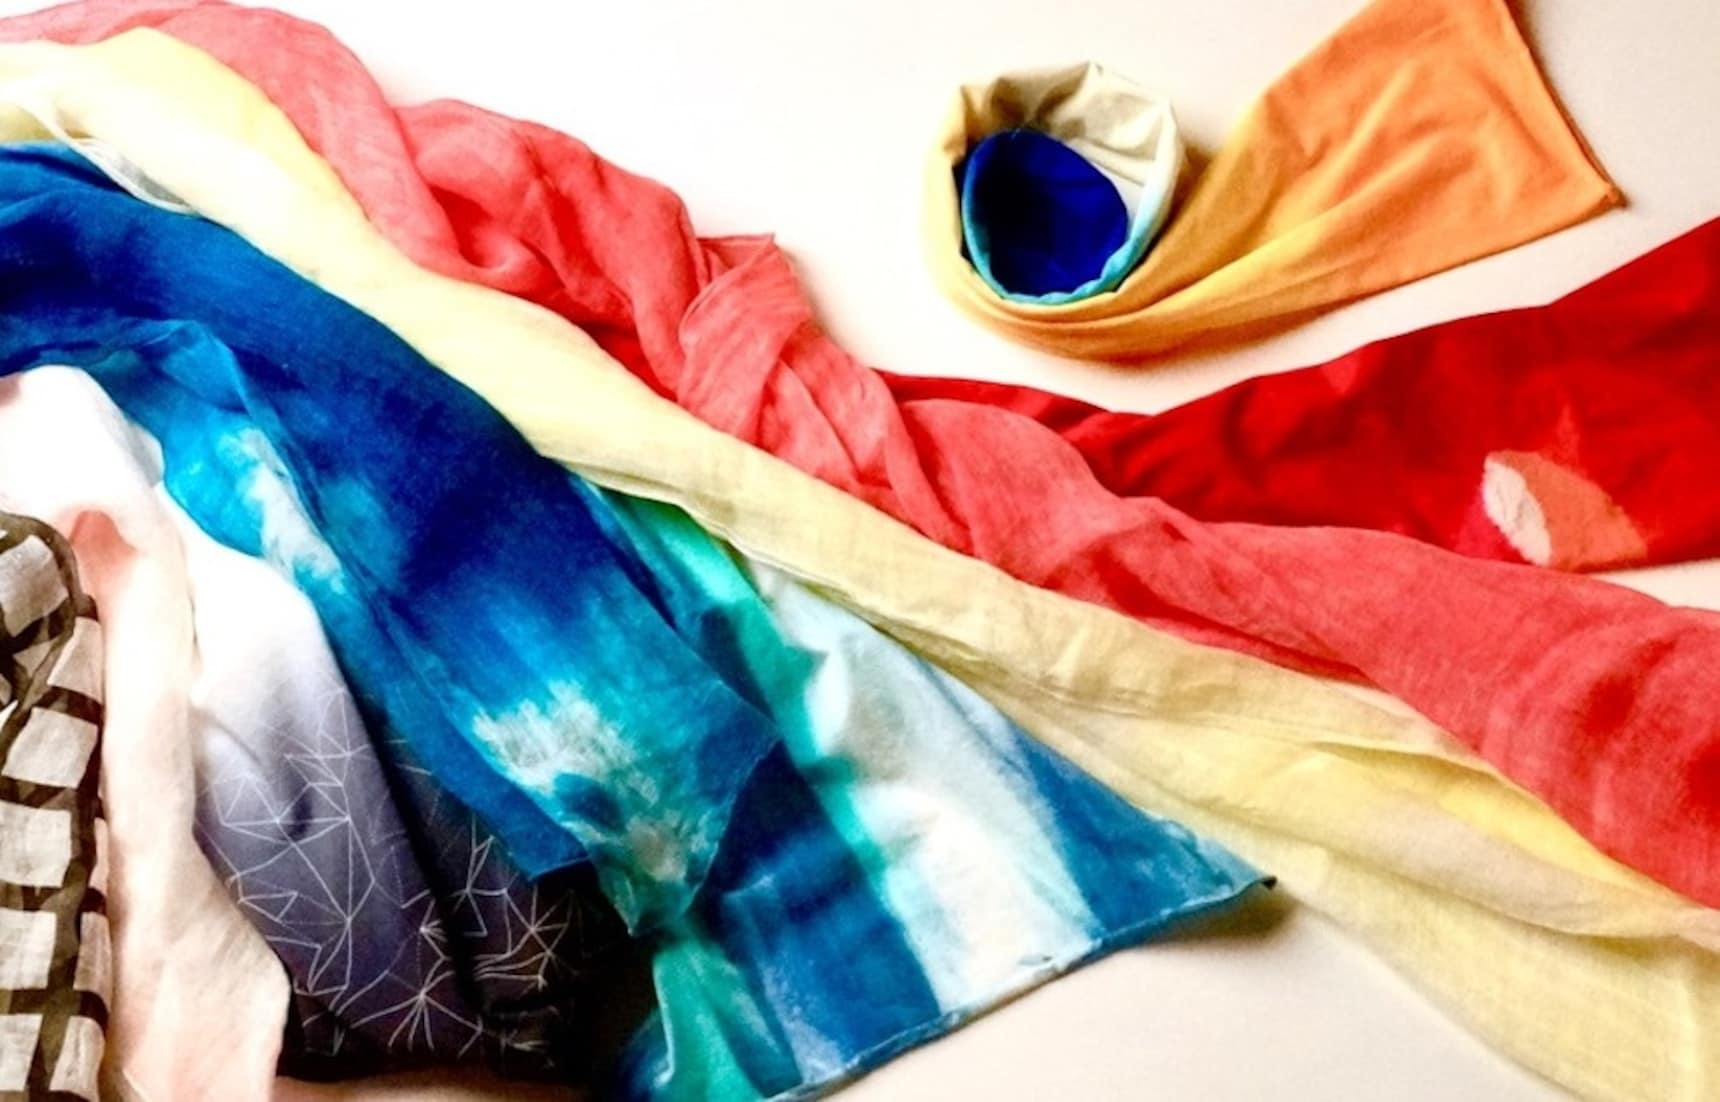 Sumida Textiles: Hand-Dyed in Tokyo